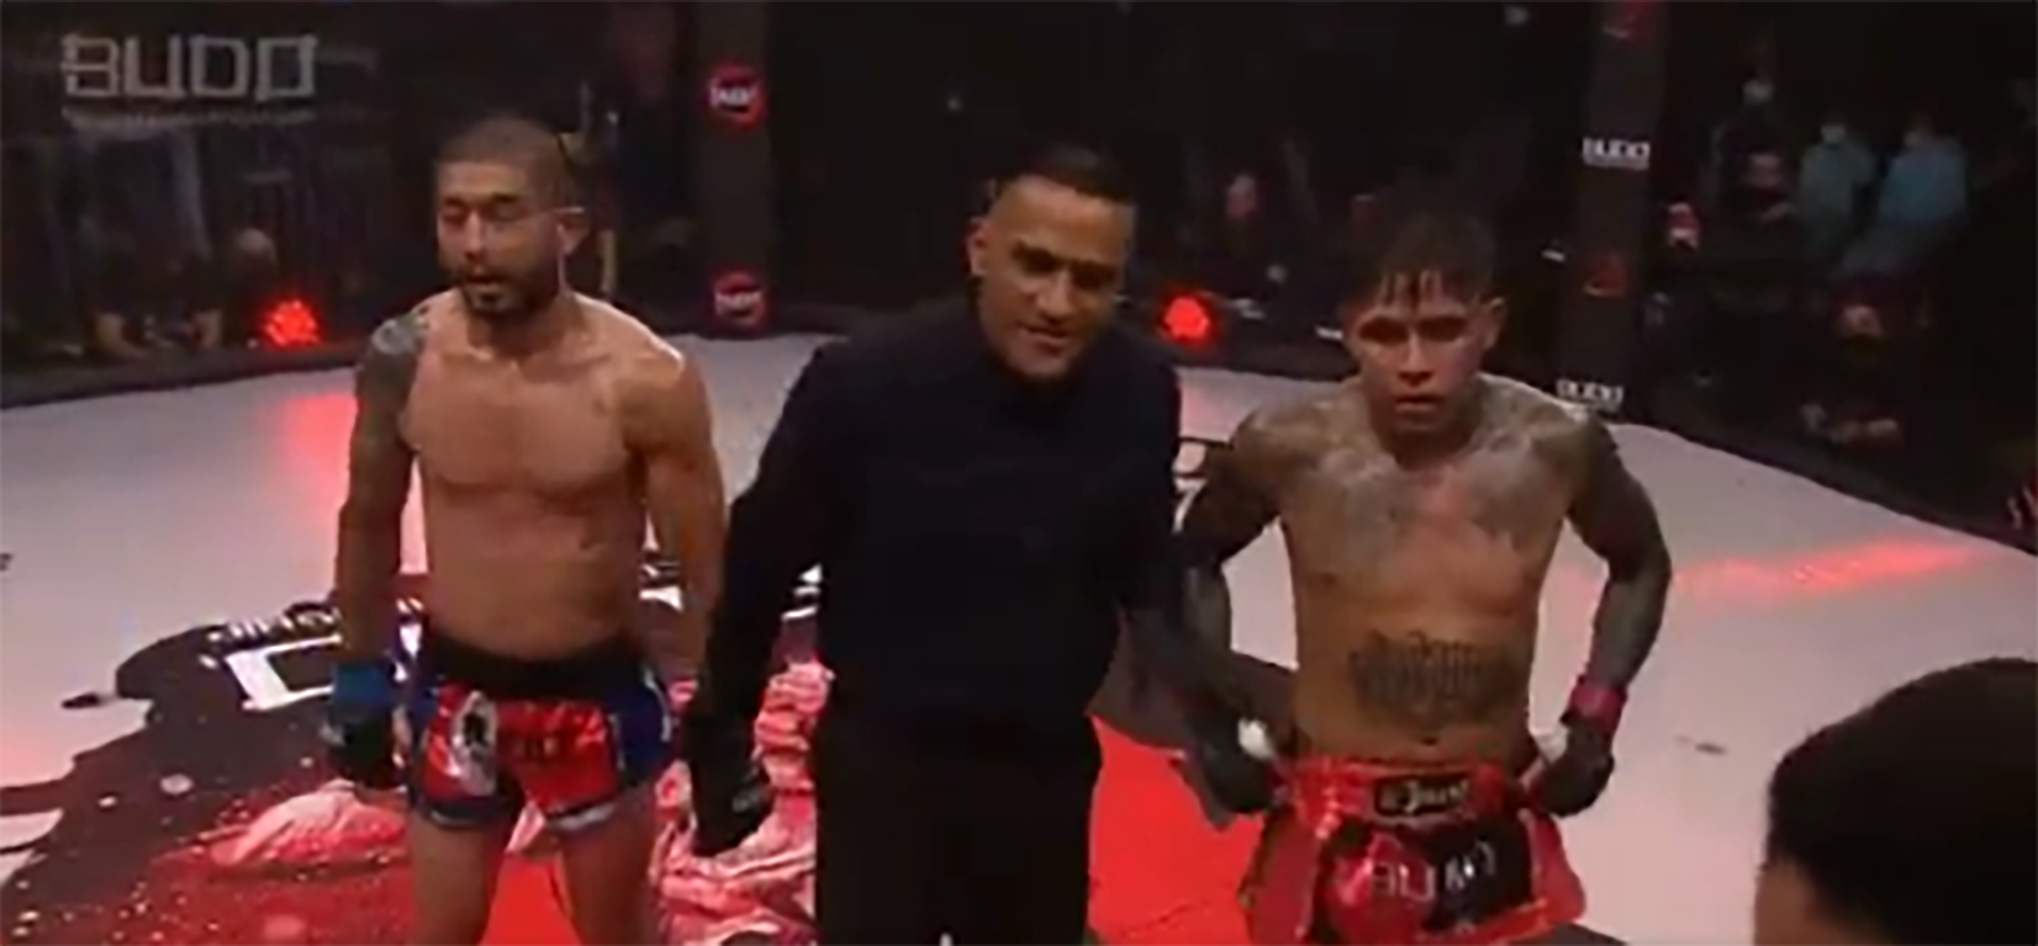 Video: No one seems to know who won this Muay Thai fight